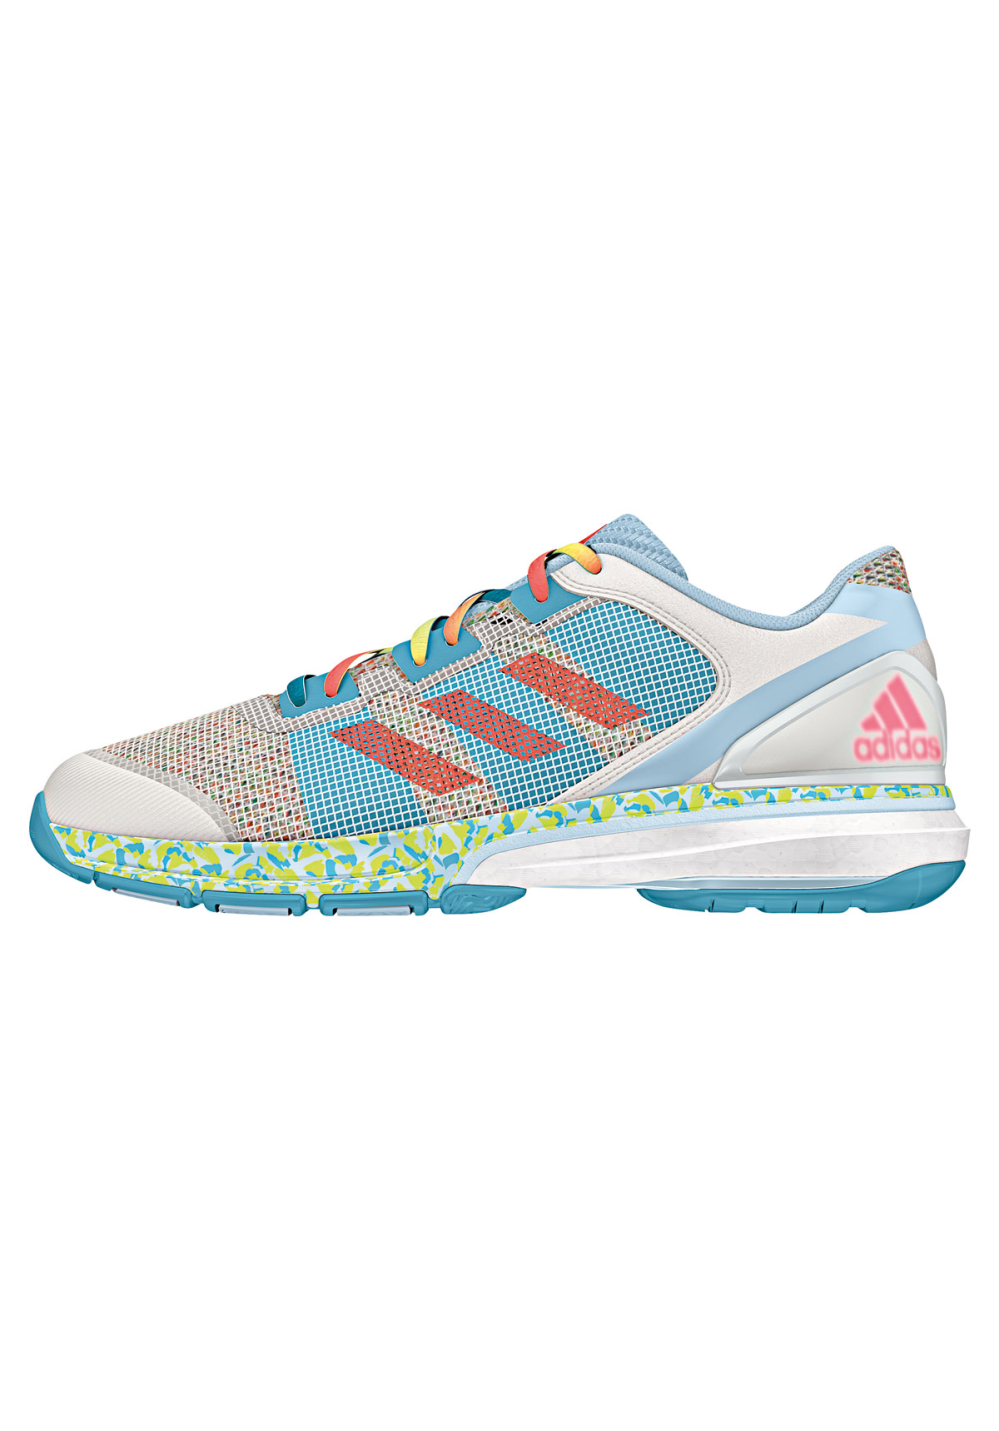 3c3dbaed4 ... adidas Stabil Boost II - Handball shoes for Women - Grey. Back to  Overview. 1  2. Previous